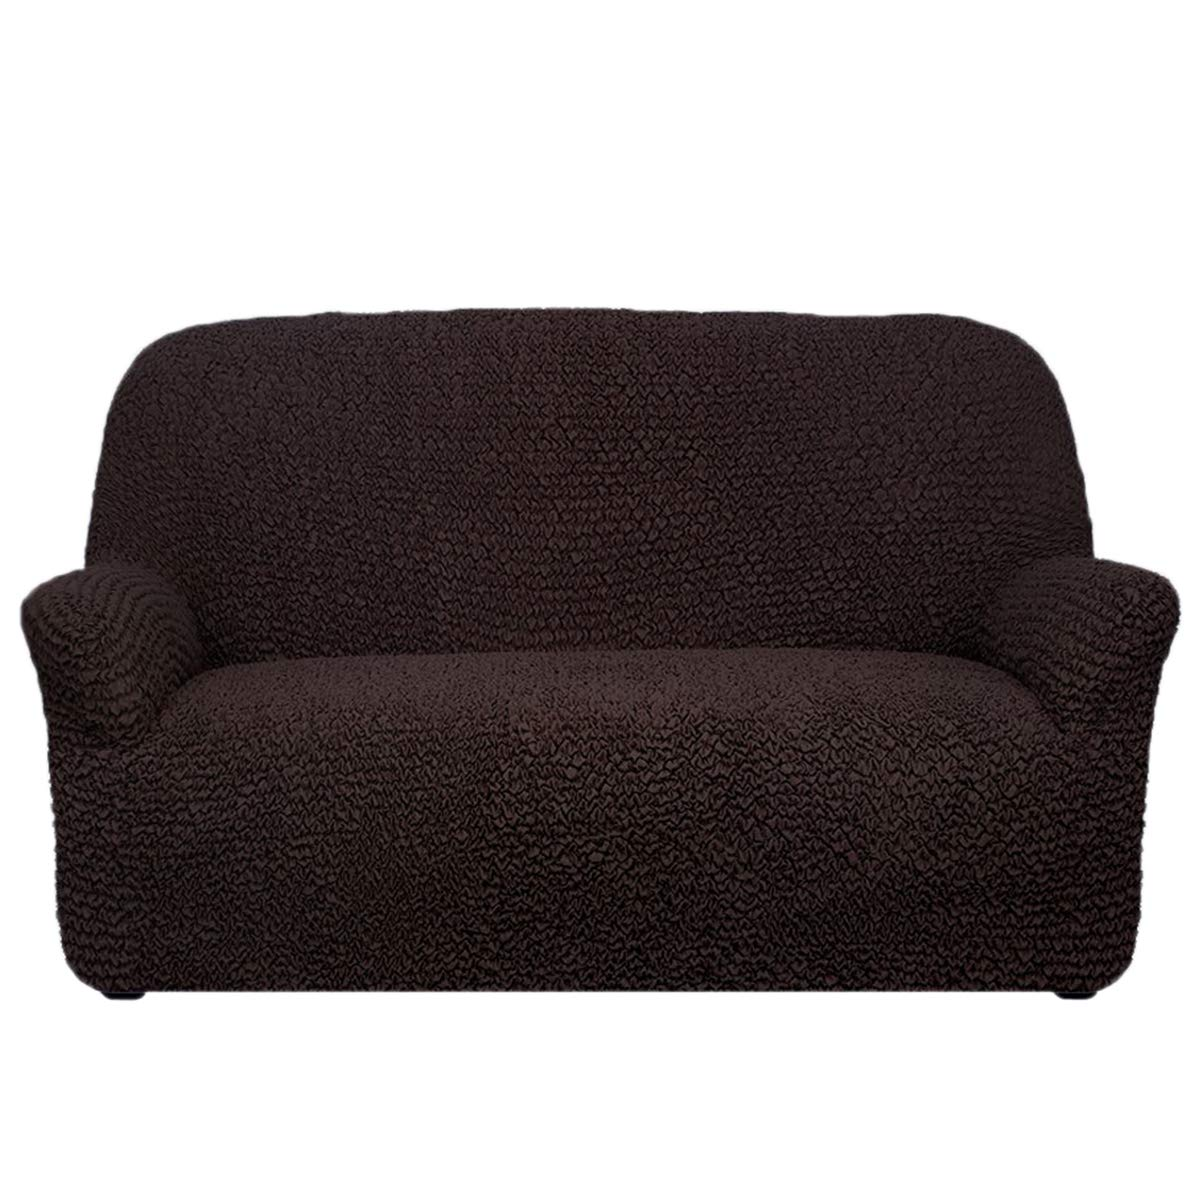 Mámma Mía Sofa Covers Stretch Furniture Slipcover Form Fit Stylish Furniture Protector Two-way Stretch Italian Fabric Microfibra Collection Premium Quality Made in Italy - Dark Chocolate (Loveseat)